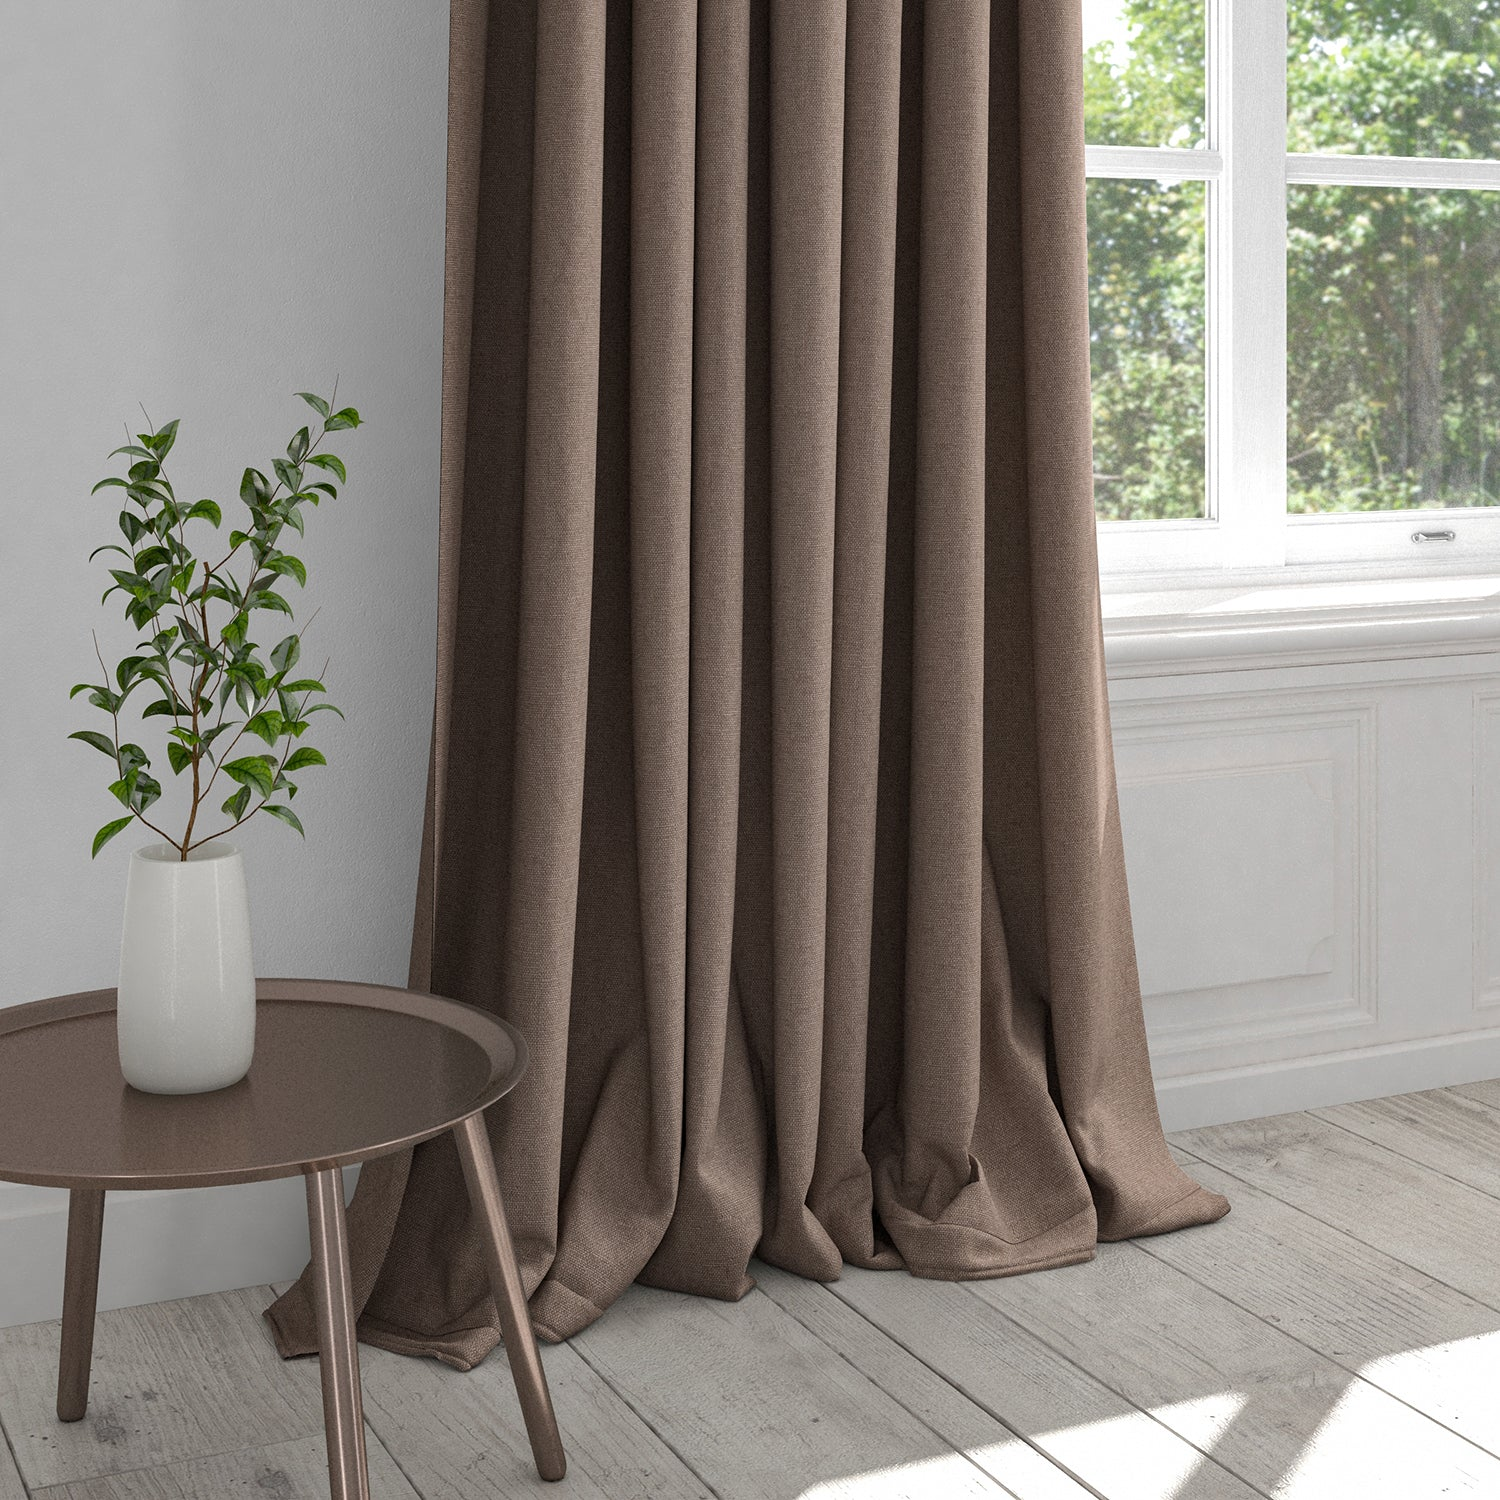 Curtain in a mauve washable cotton plain fabric